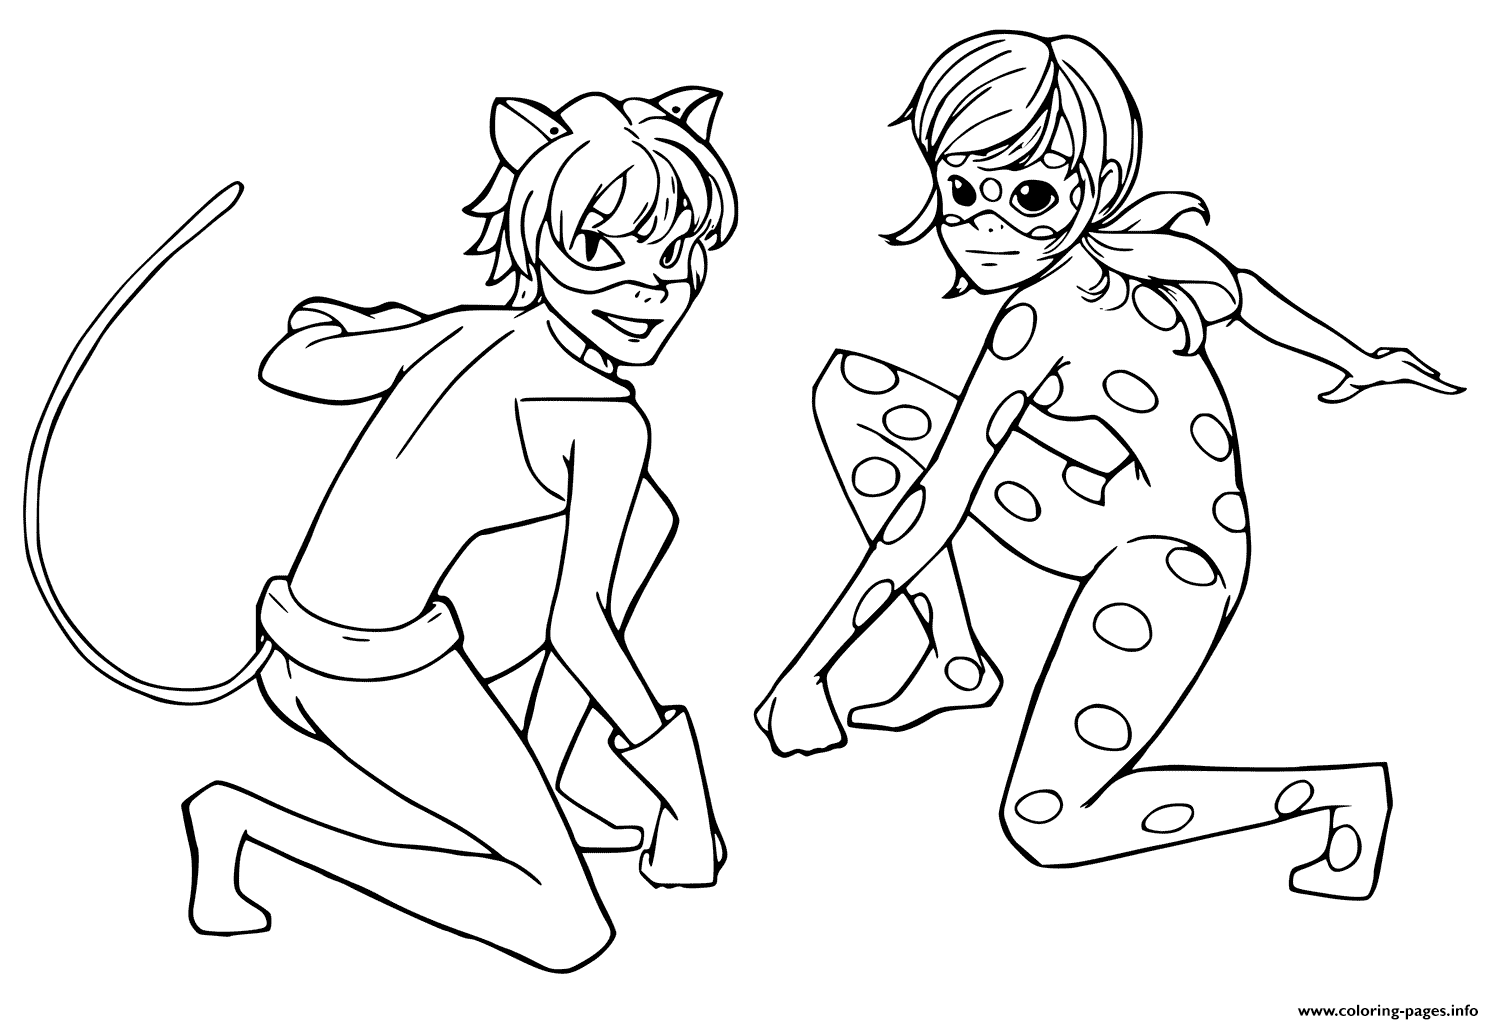 Miraculous Tales Of Ladybug Black Cat Coloring Pages Printable